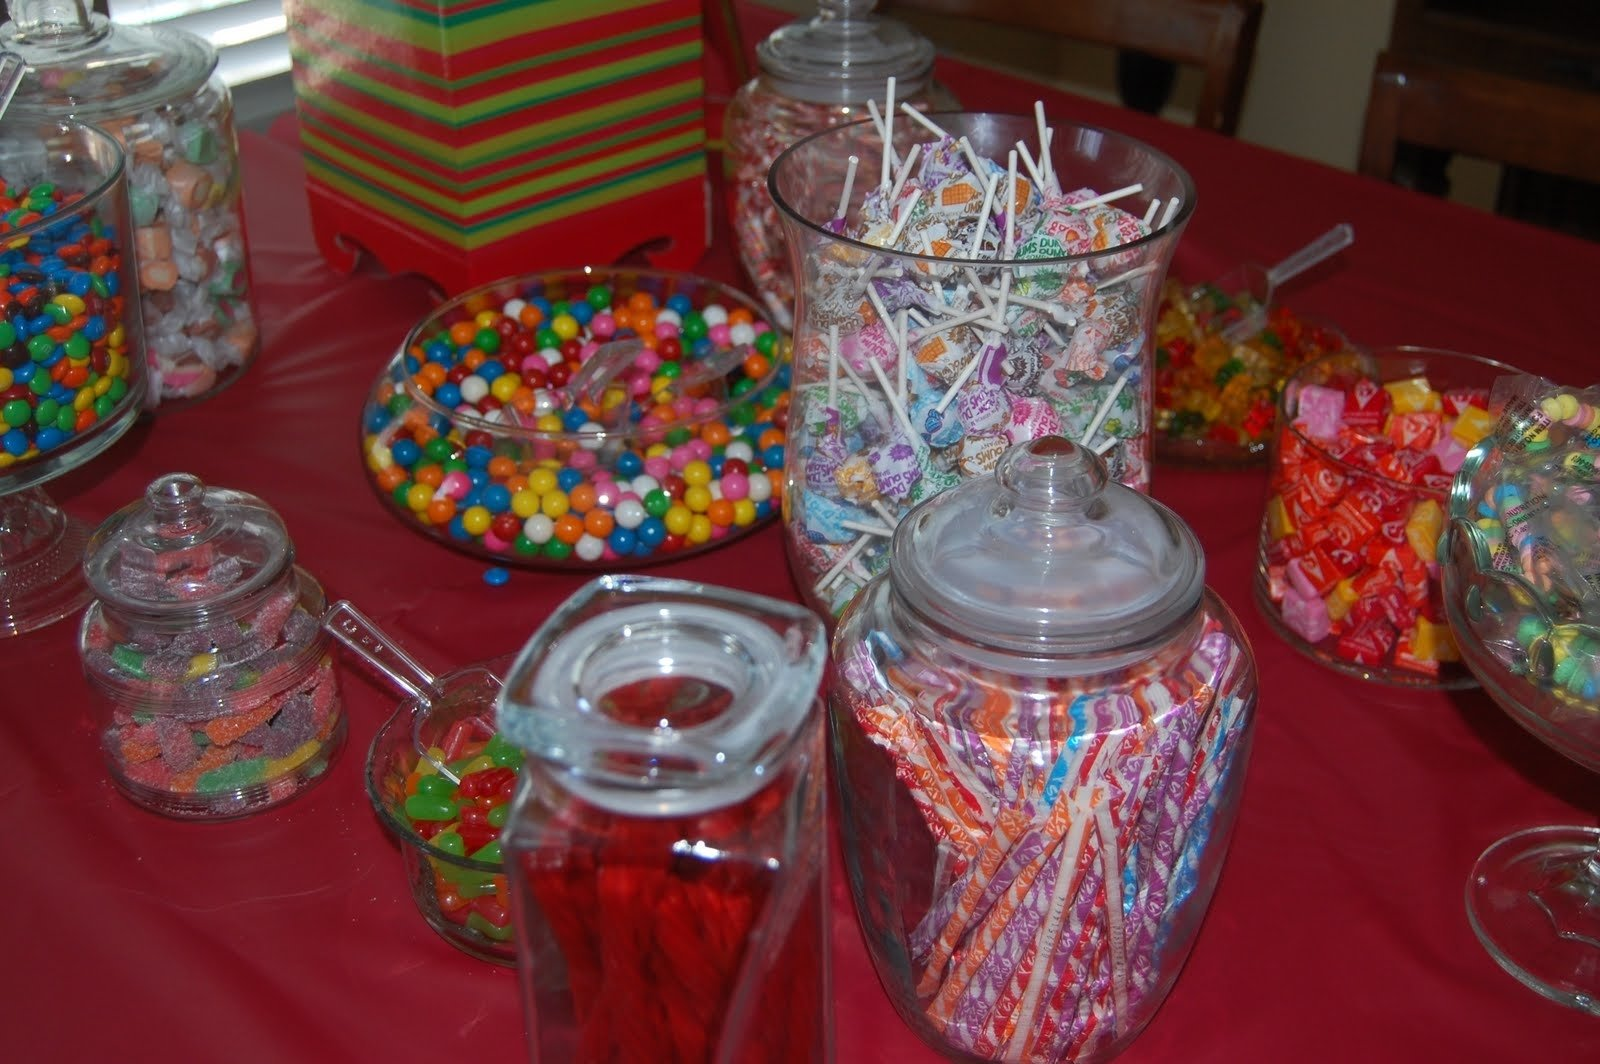 10 Ideal Candy Bar Ideas For Party bushel peck candy buffet birthday party home art decor 65481 1 2020